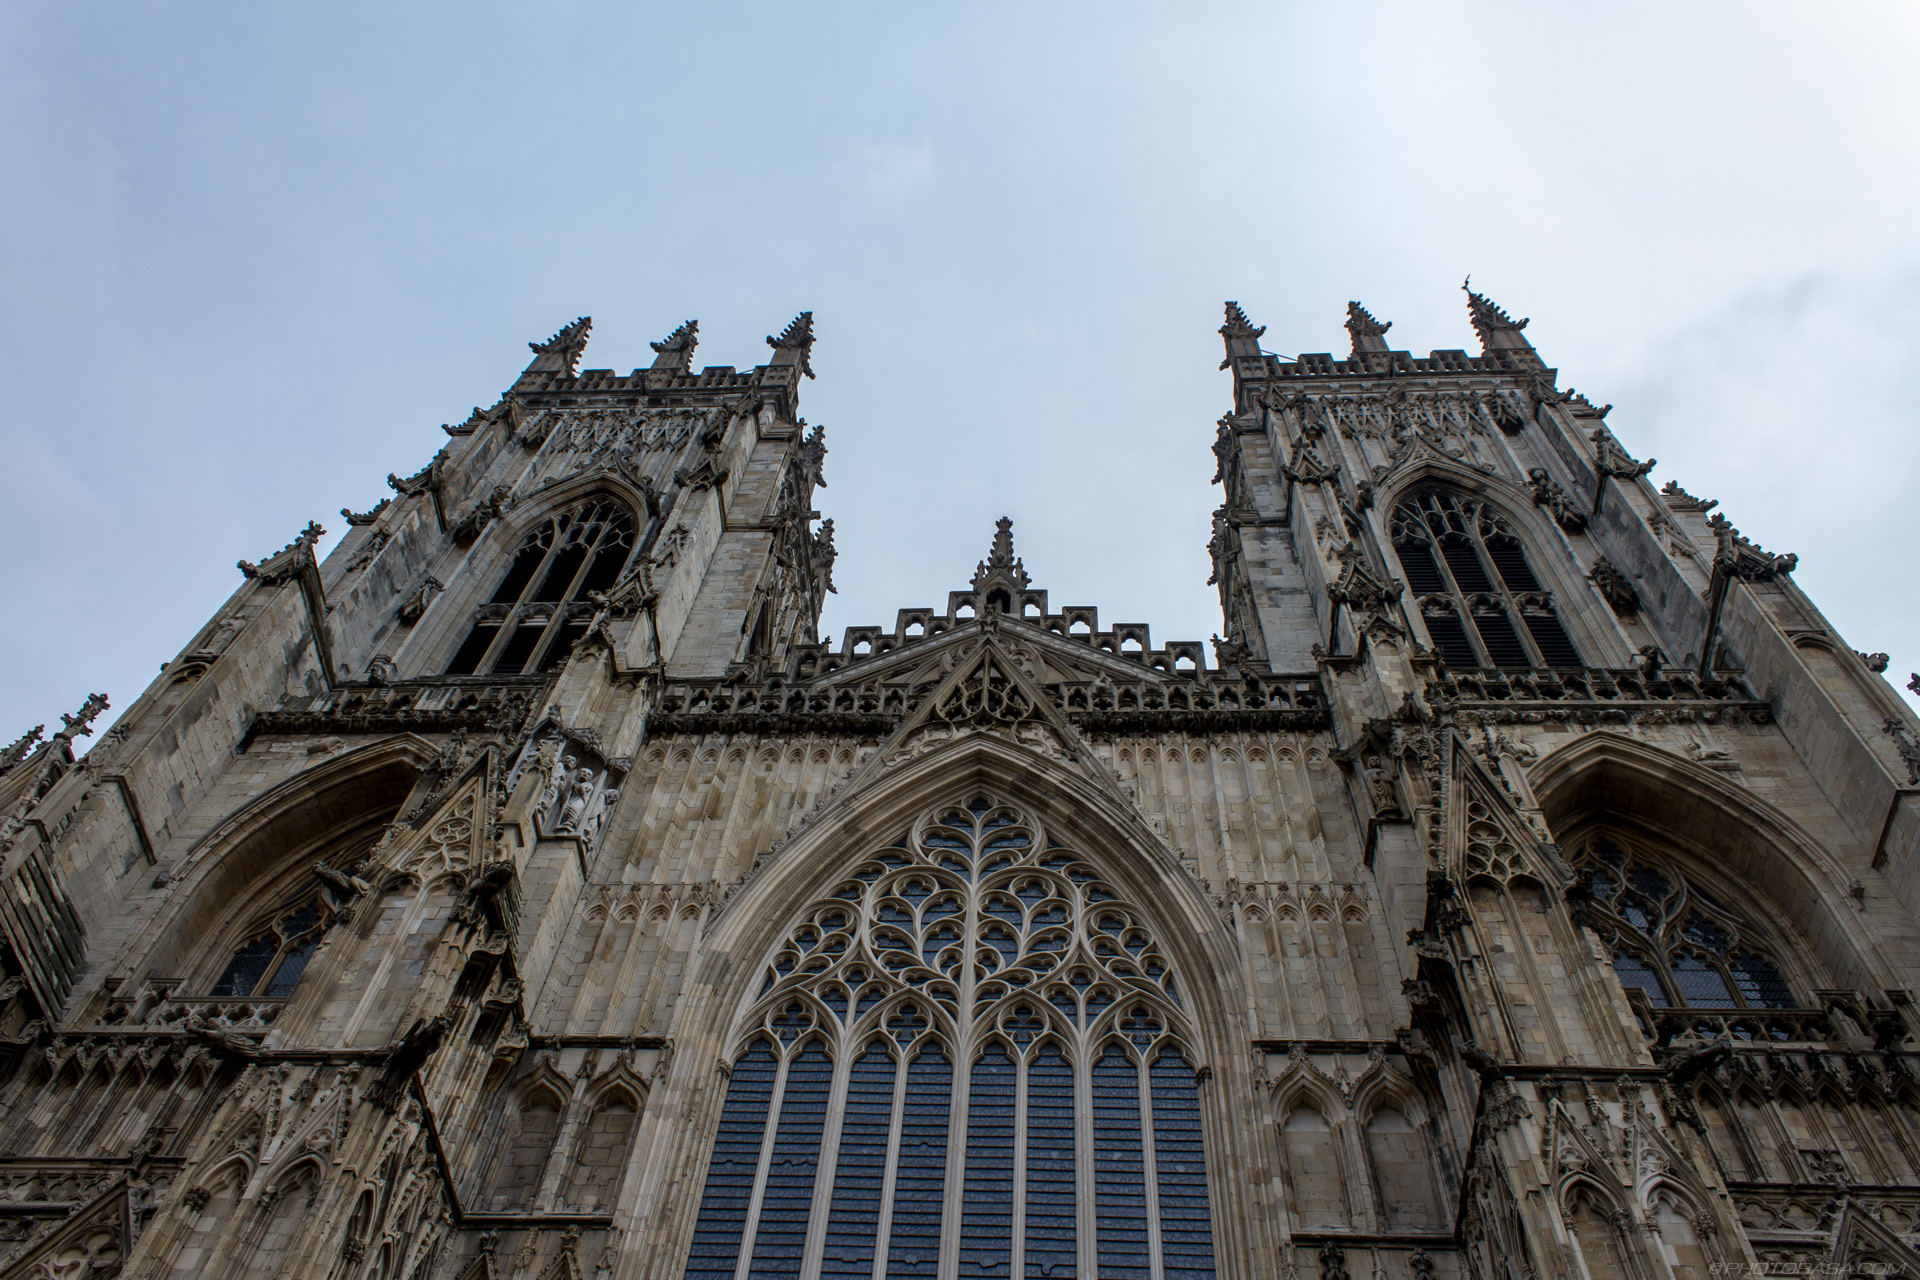 https://photorasa.com/yorkminster-cathedral/towers-above-entrance/